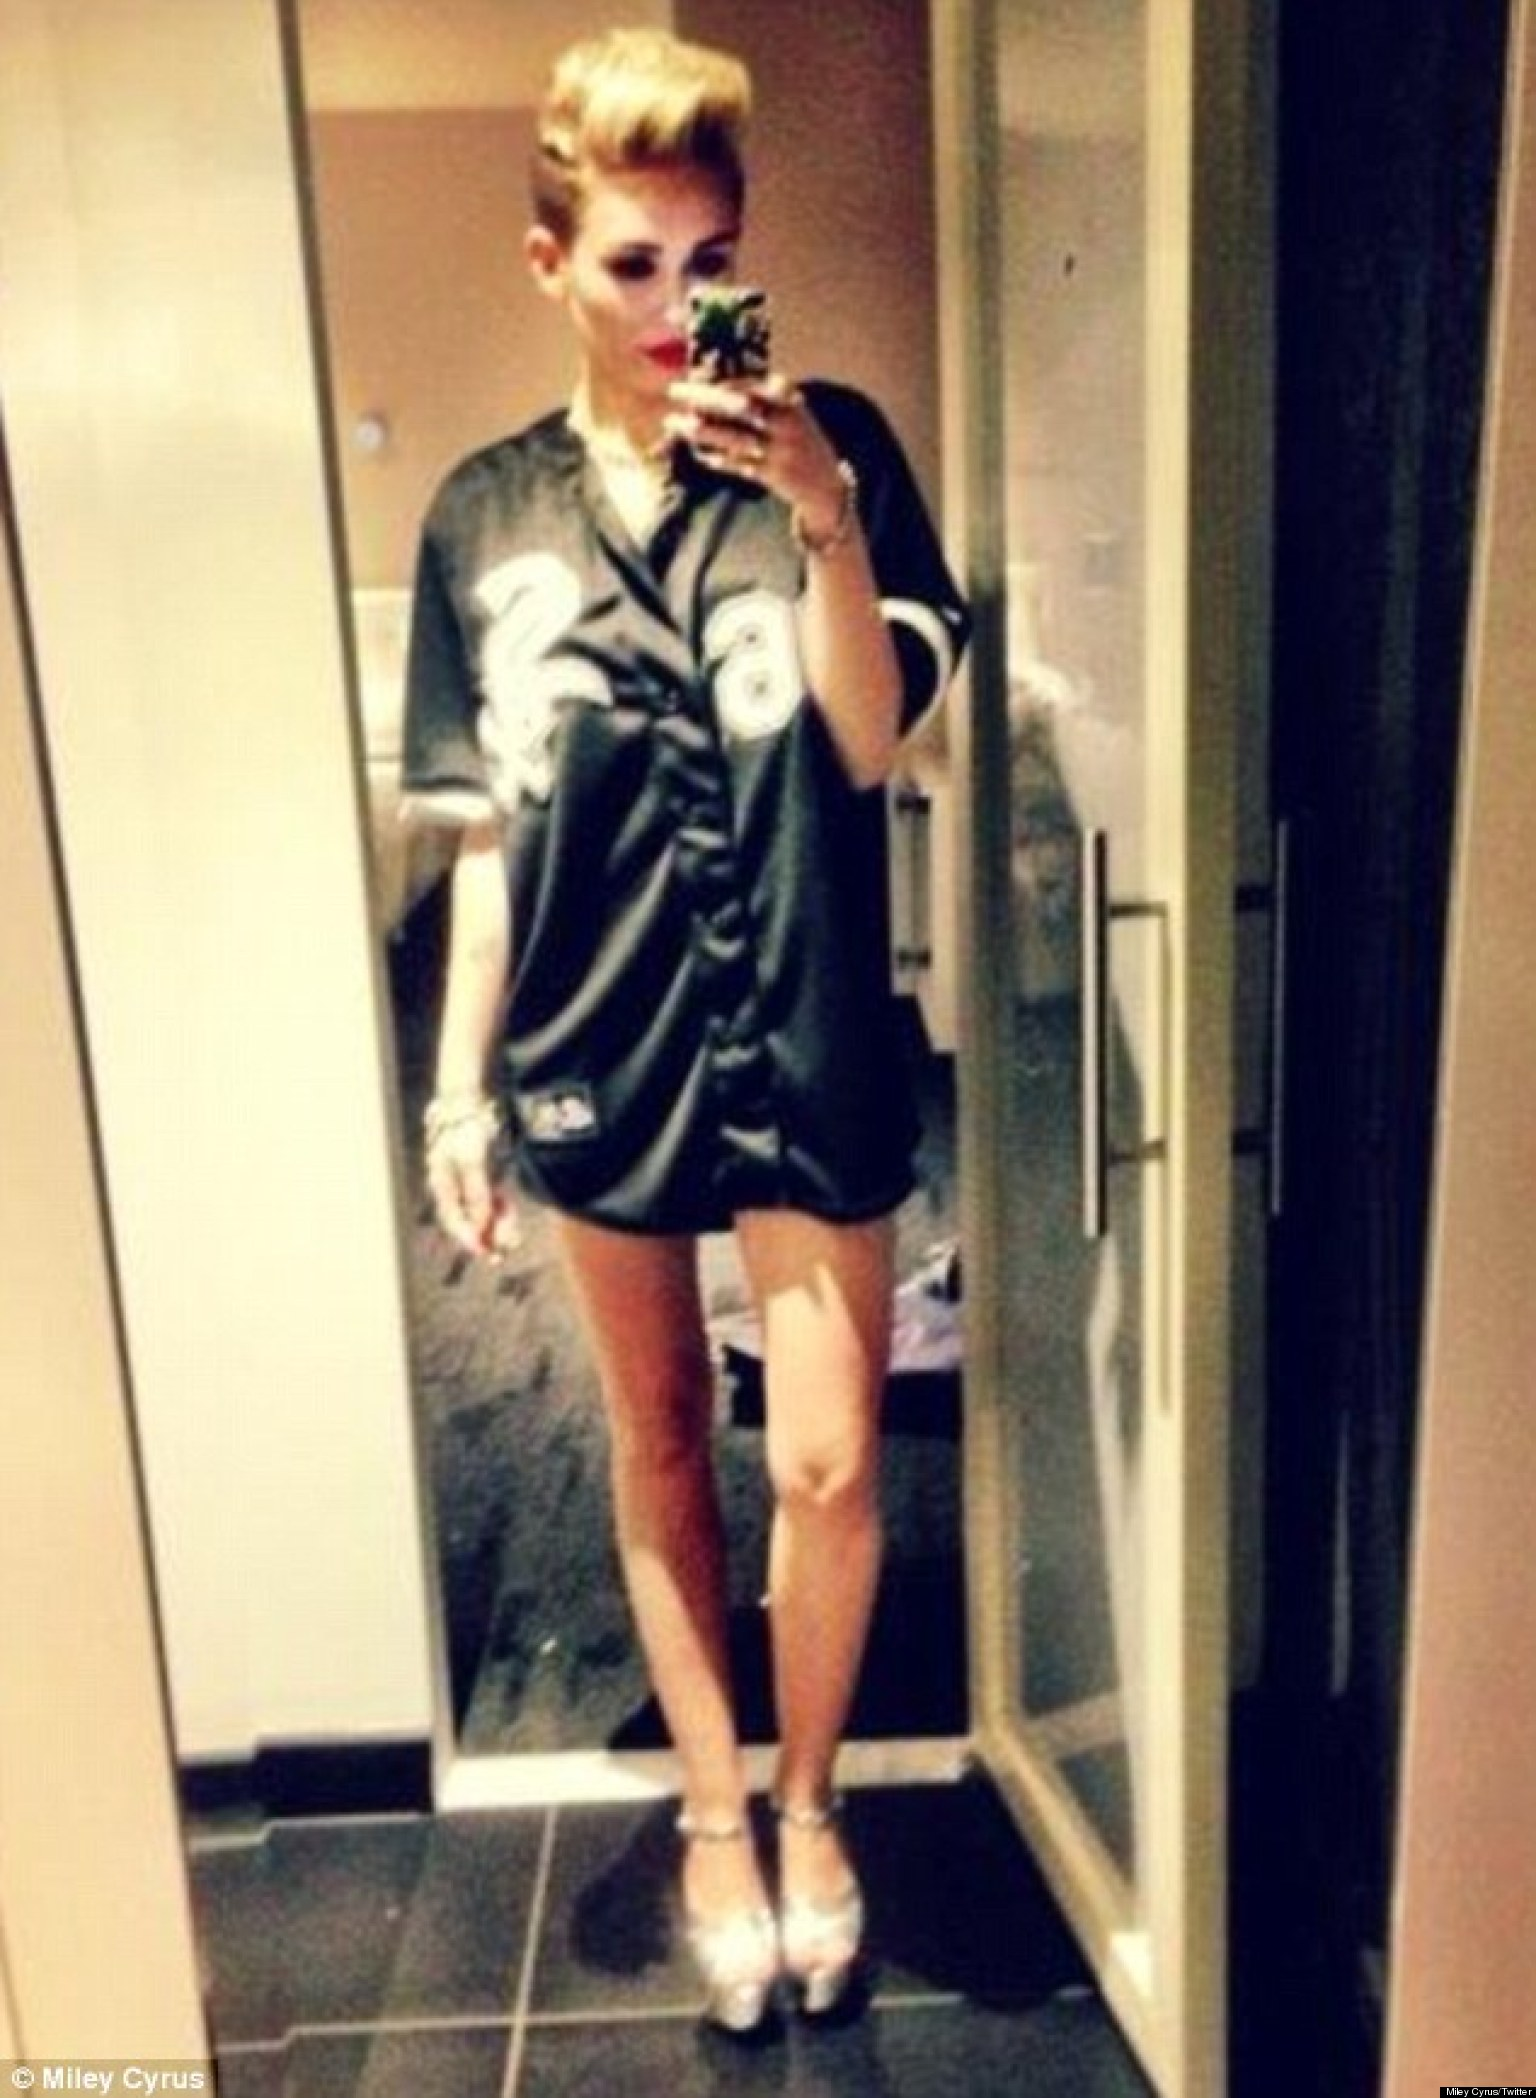 Miley Cyrus' Latest Twitter Photo Has Her Posing In A ...